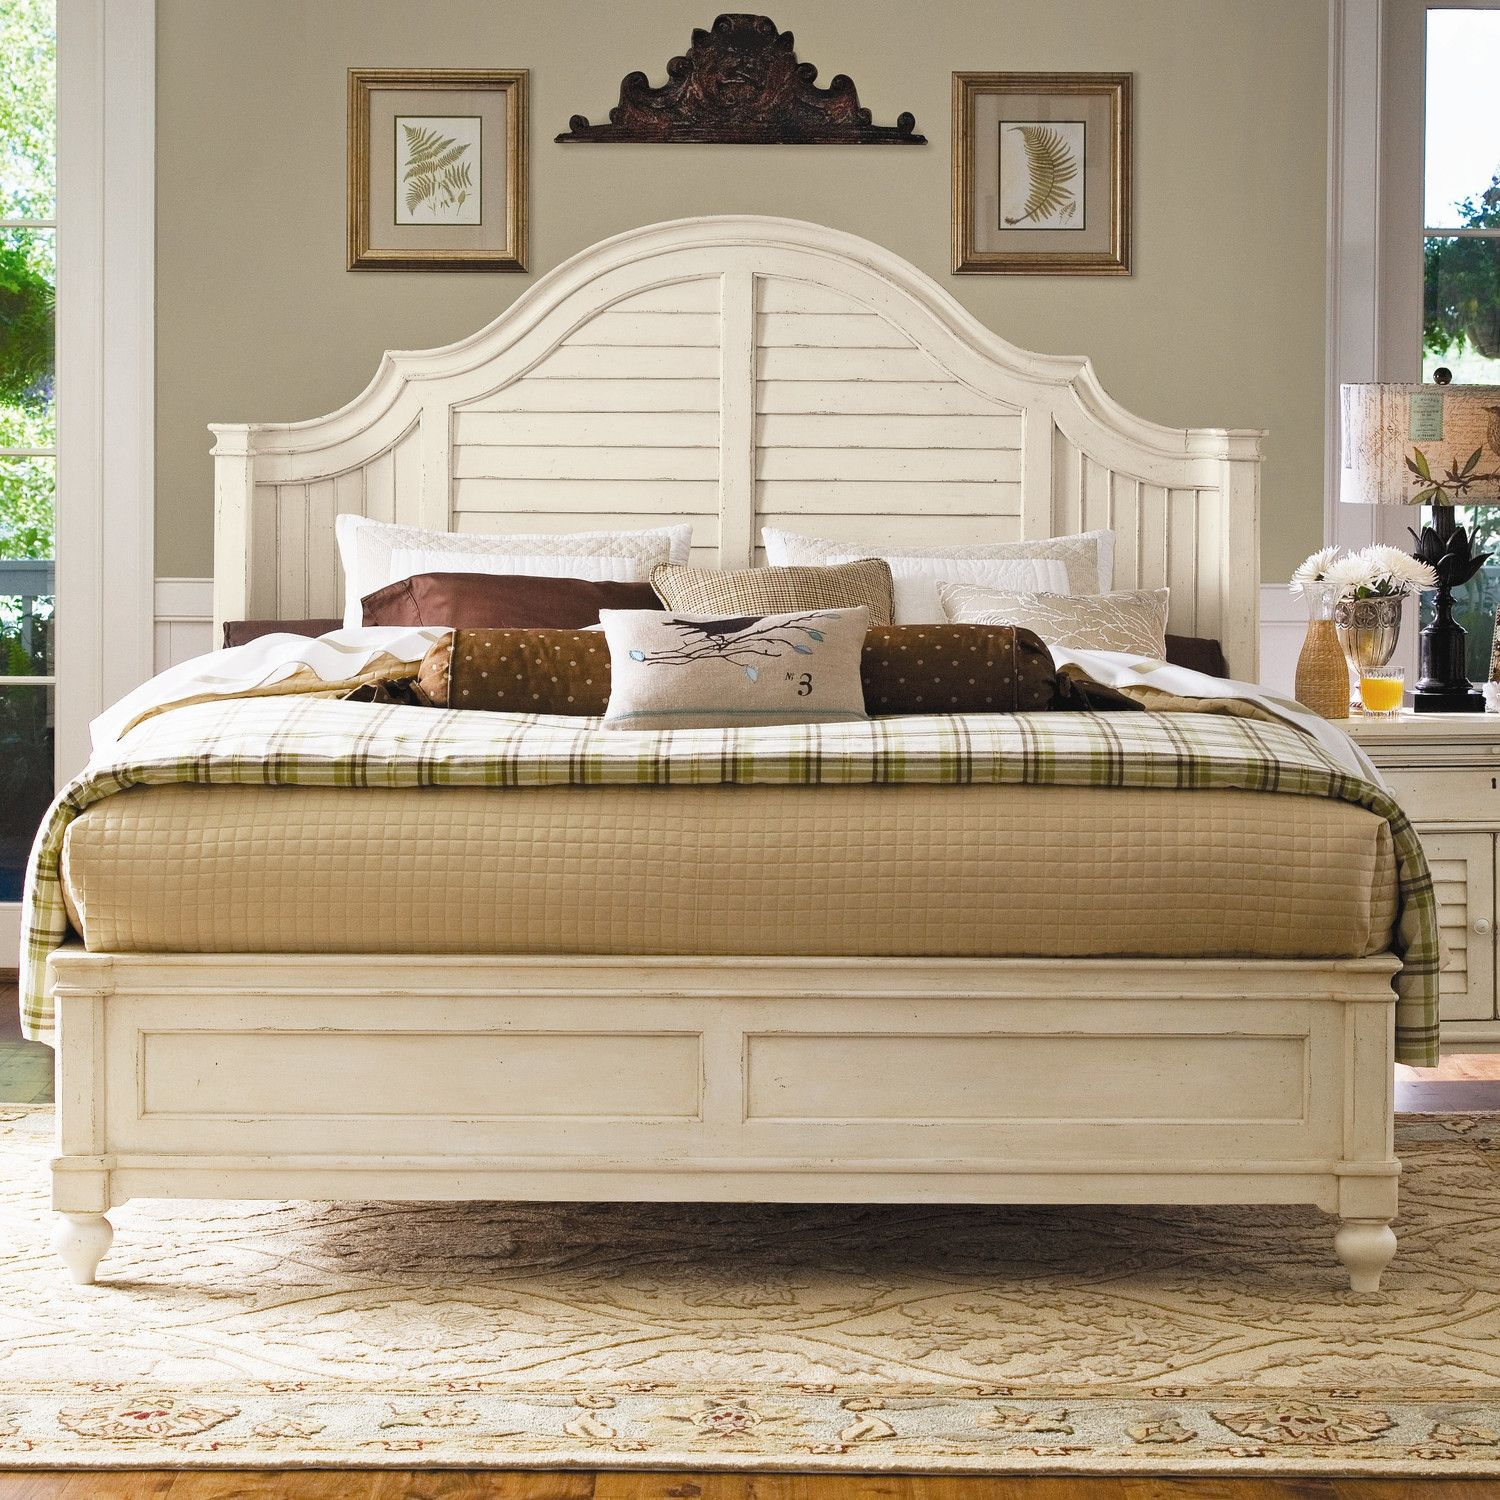 Shop Wayfair For A Zillion Things Home Across All Styles And Budgets